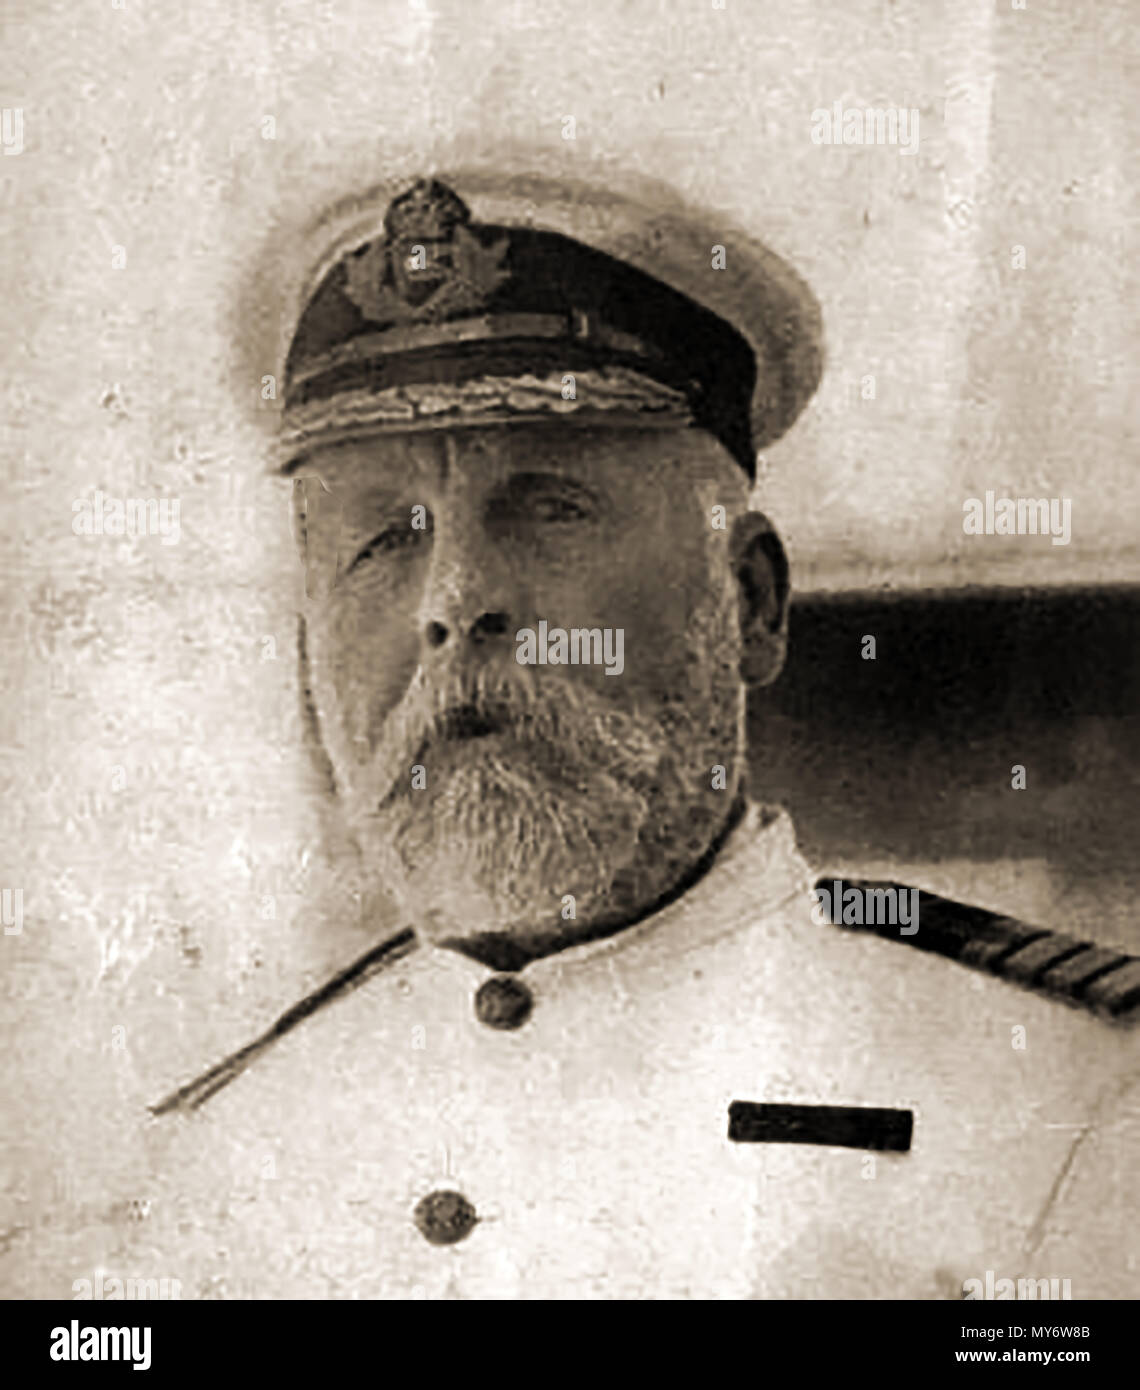 TITANIC - 1912 - Portrait of Edward John Smith, Captain of the Titanic who went down with his ship on 15 April 1912, - Stock Image